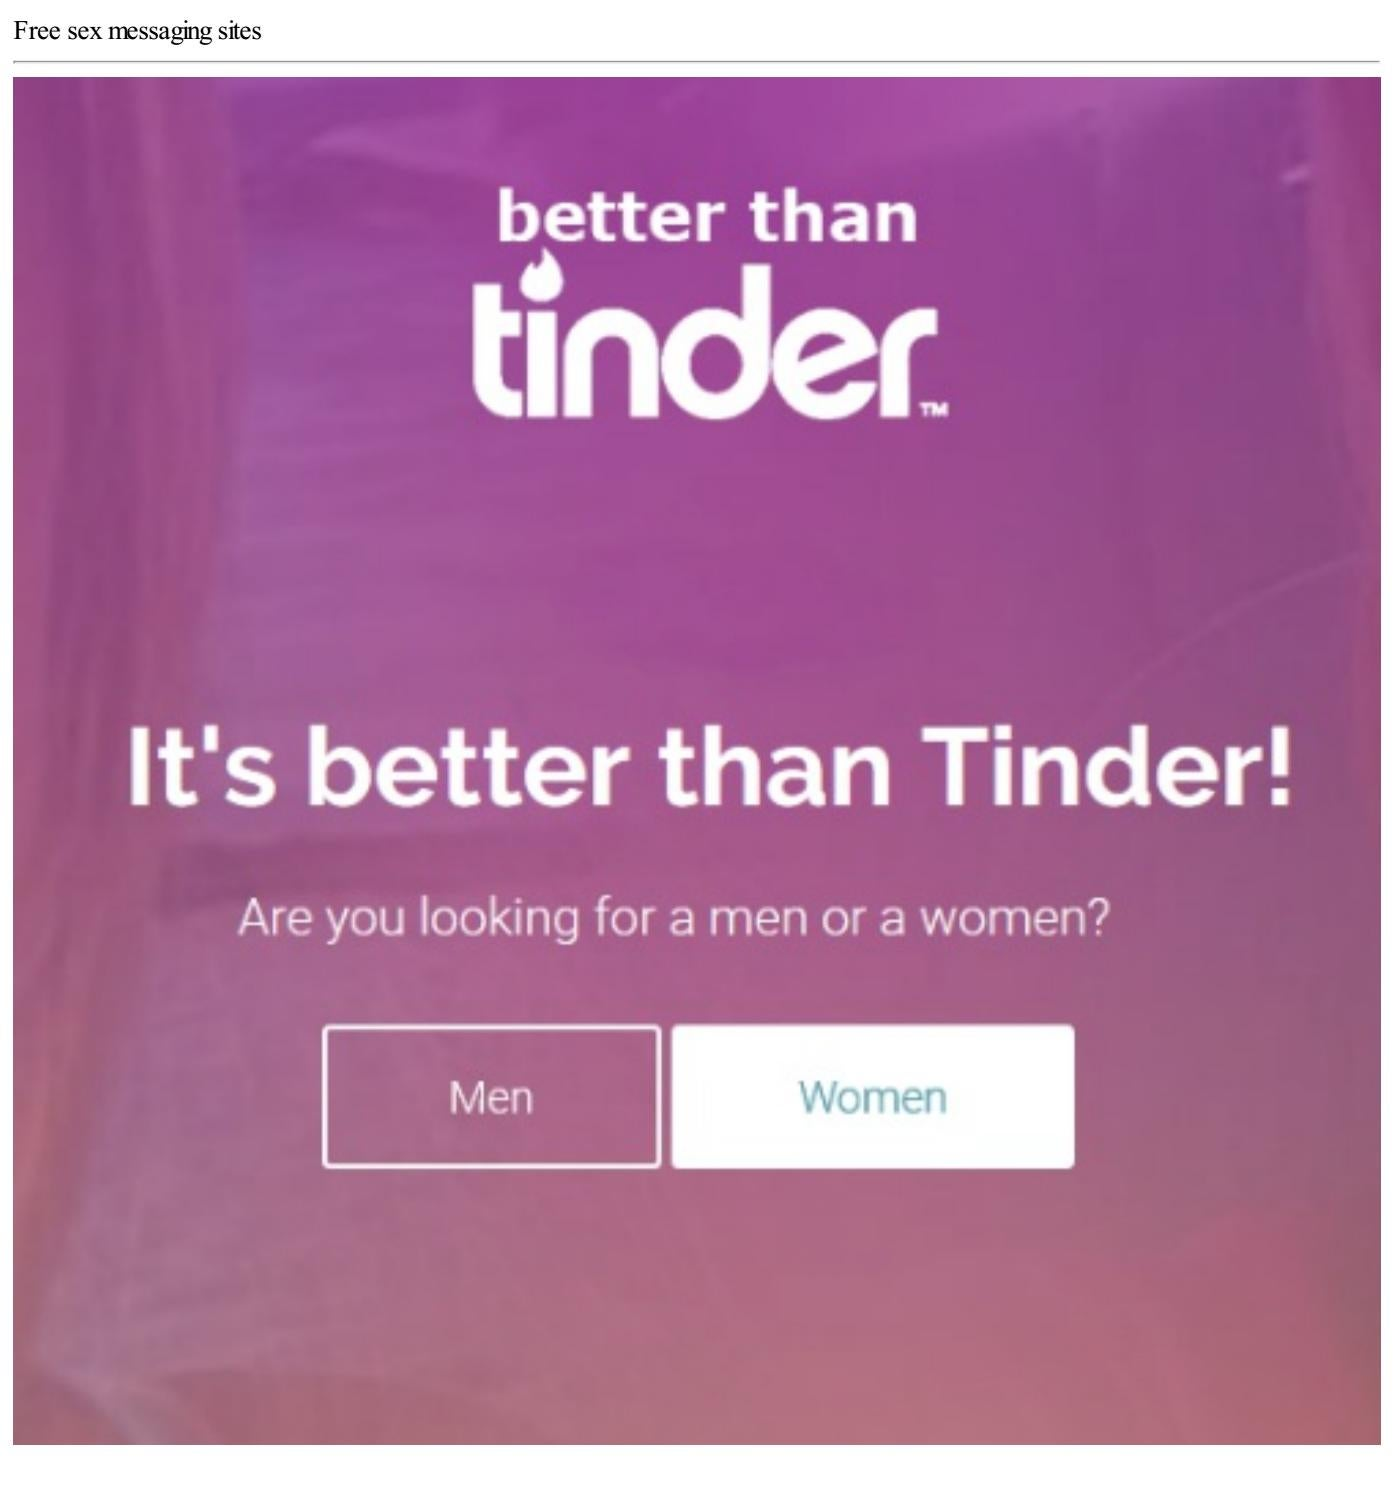 Sex messaging site